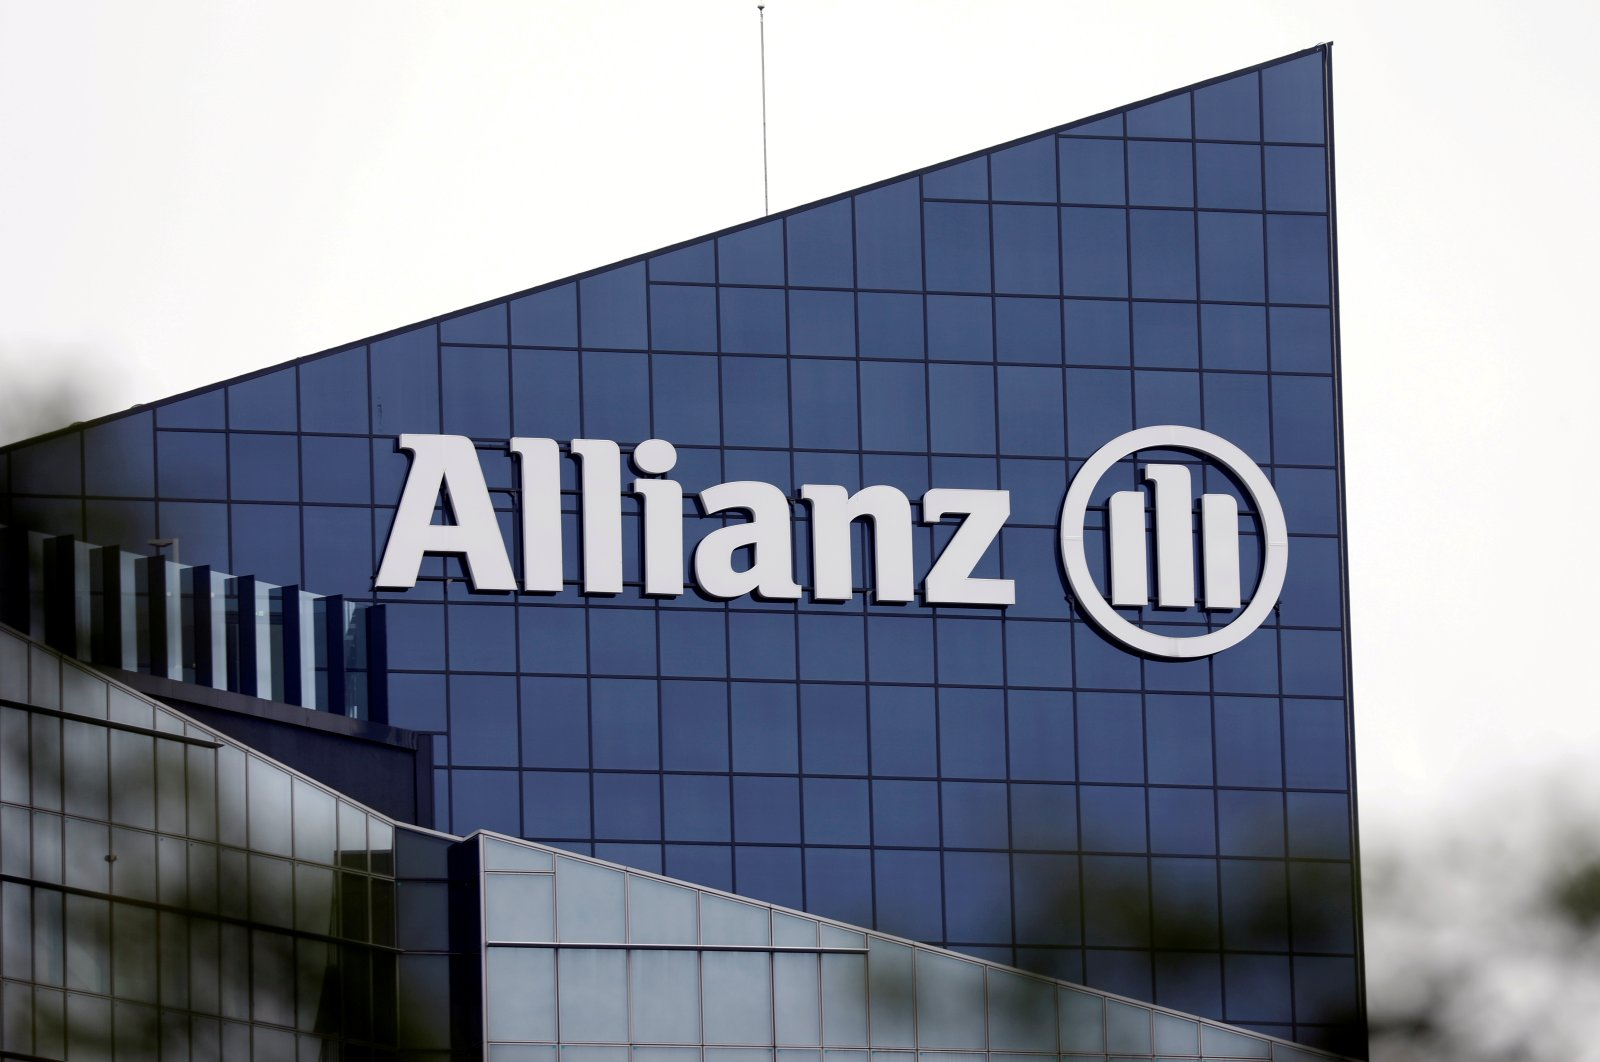 The logo of insurer Allianz SE is seen on the company building in Puteaux at the financial and business district of La Defense near Paris, outside Paris, France, May 14, 2018. (Reuters Photo)